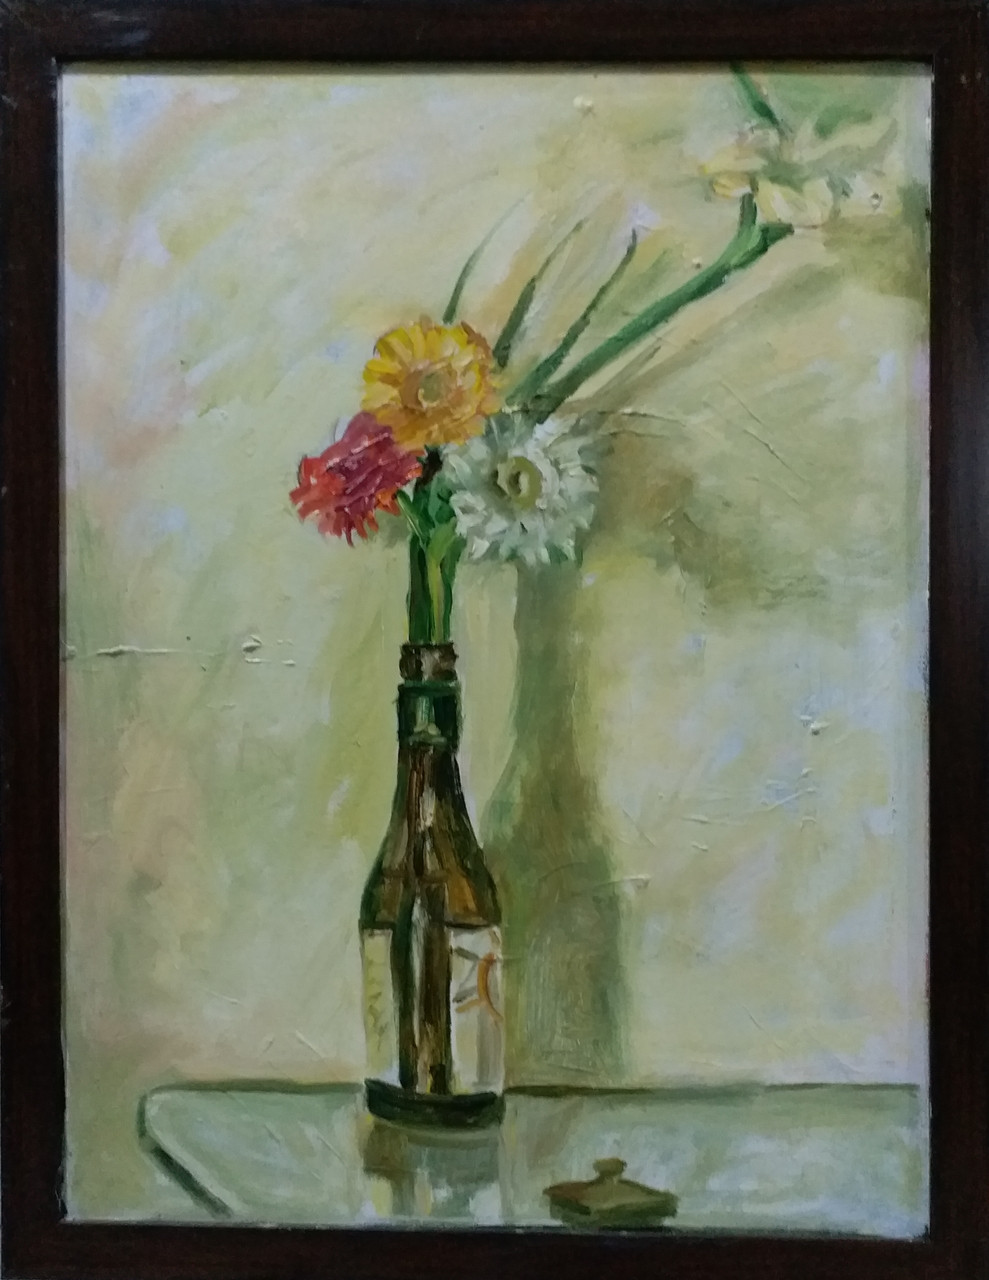 Buy Flower In A Bottle Handmade Painting By Kalpana Bagul Code Art 5814 33747 Paintings For Sale Online In India